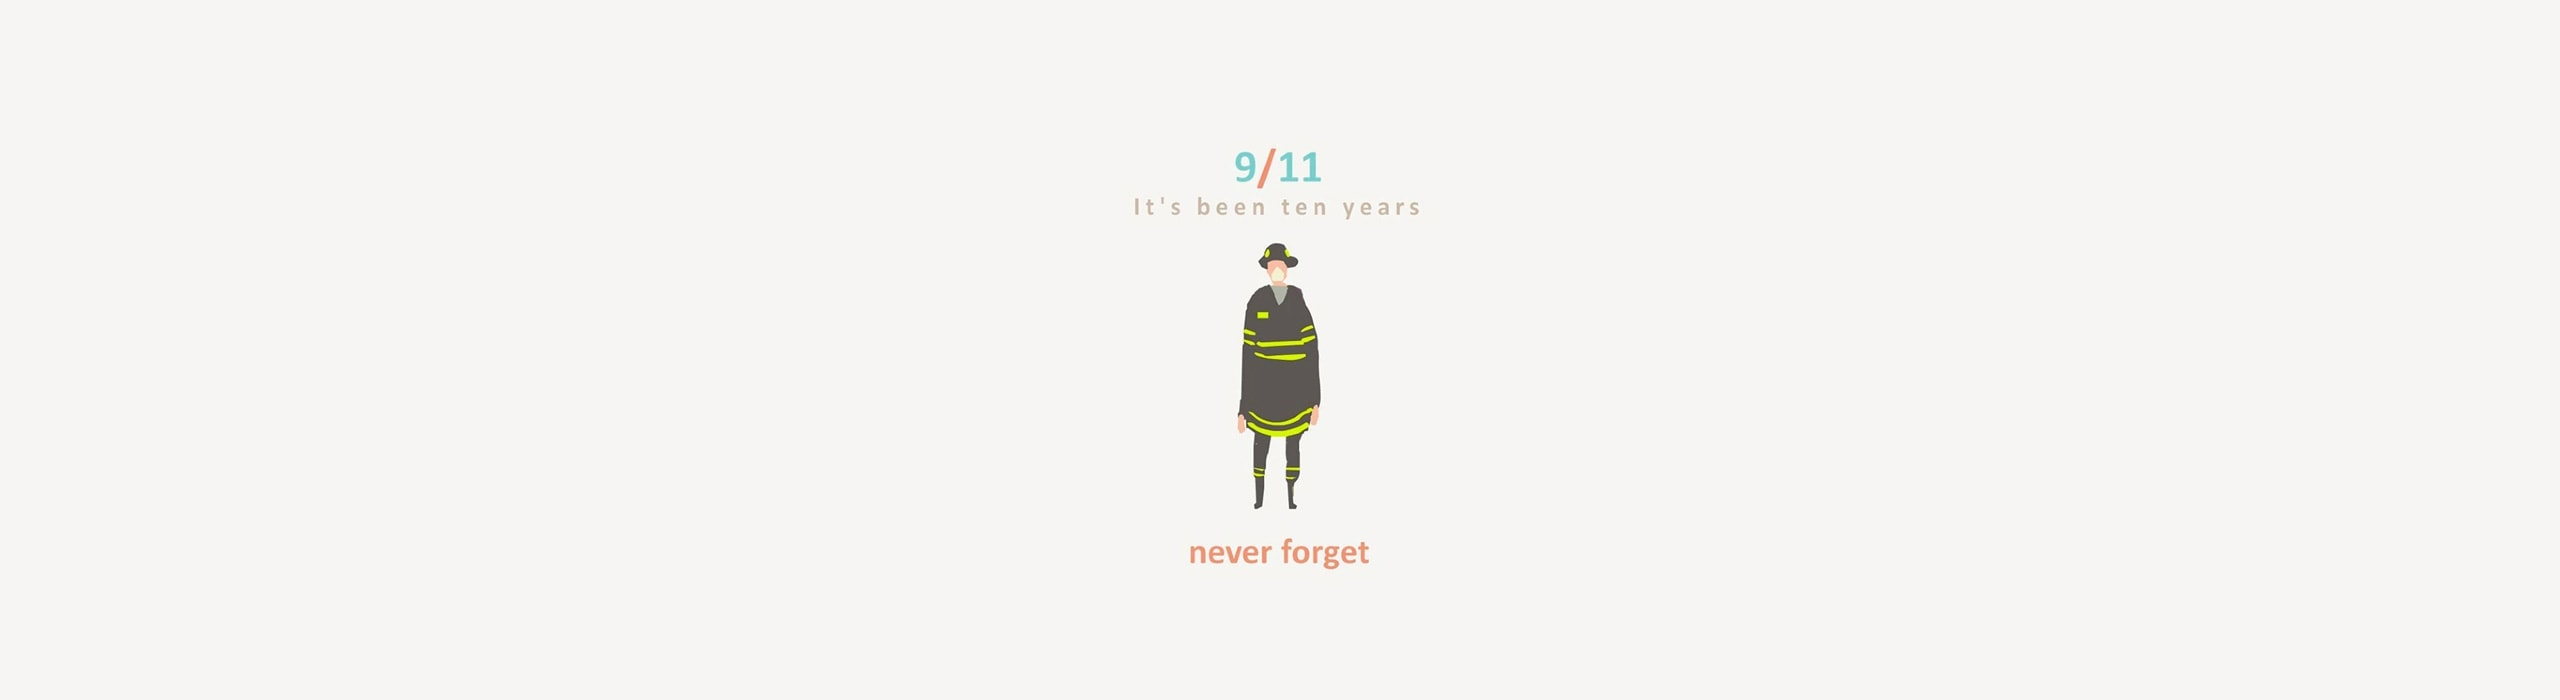 9/11 - natie-9-11-memorial-illustration - Natie Branding Agency